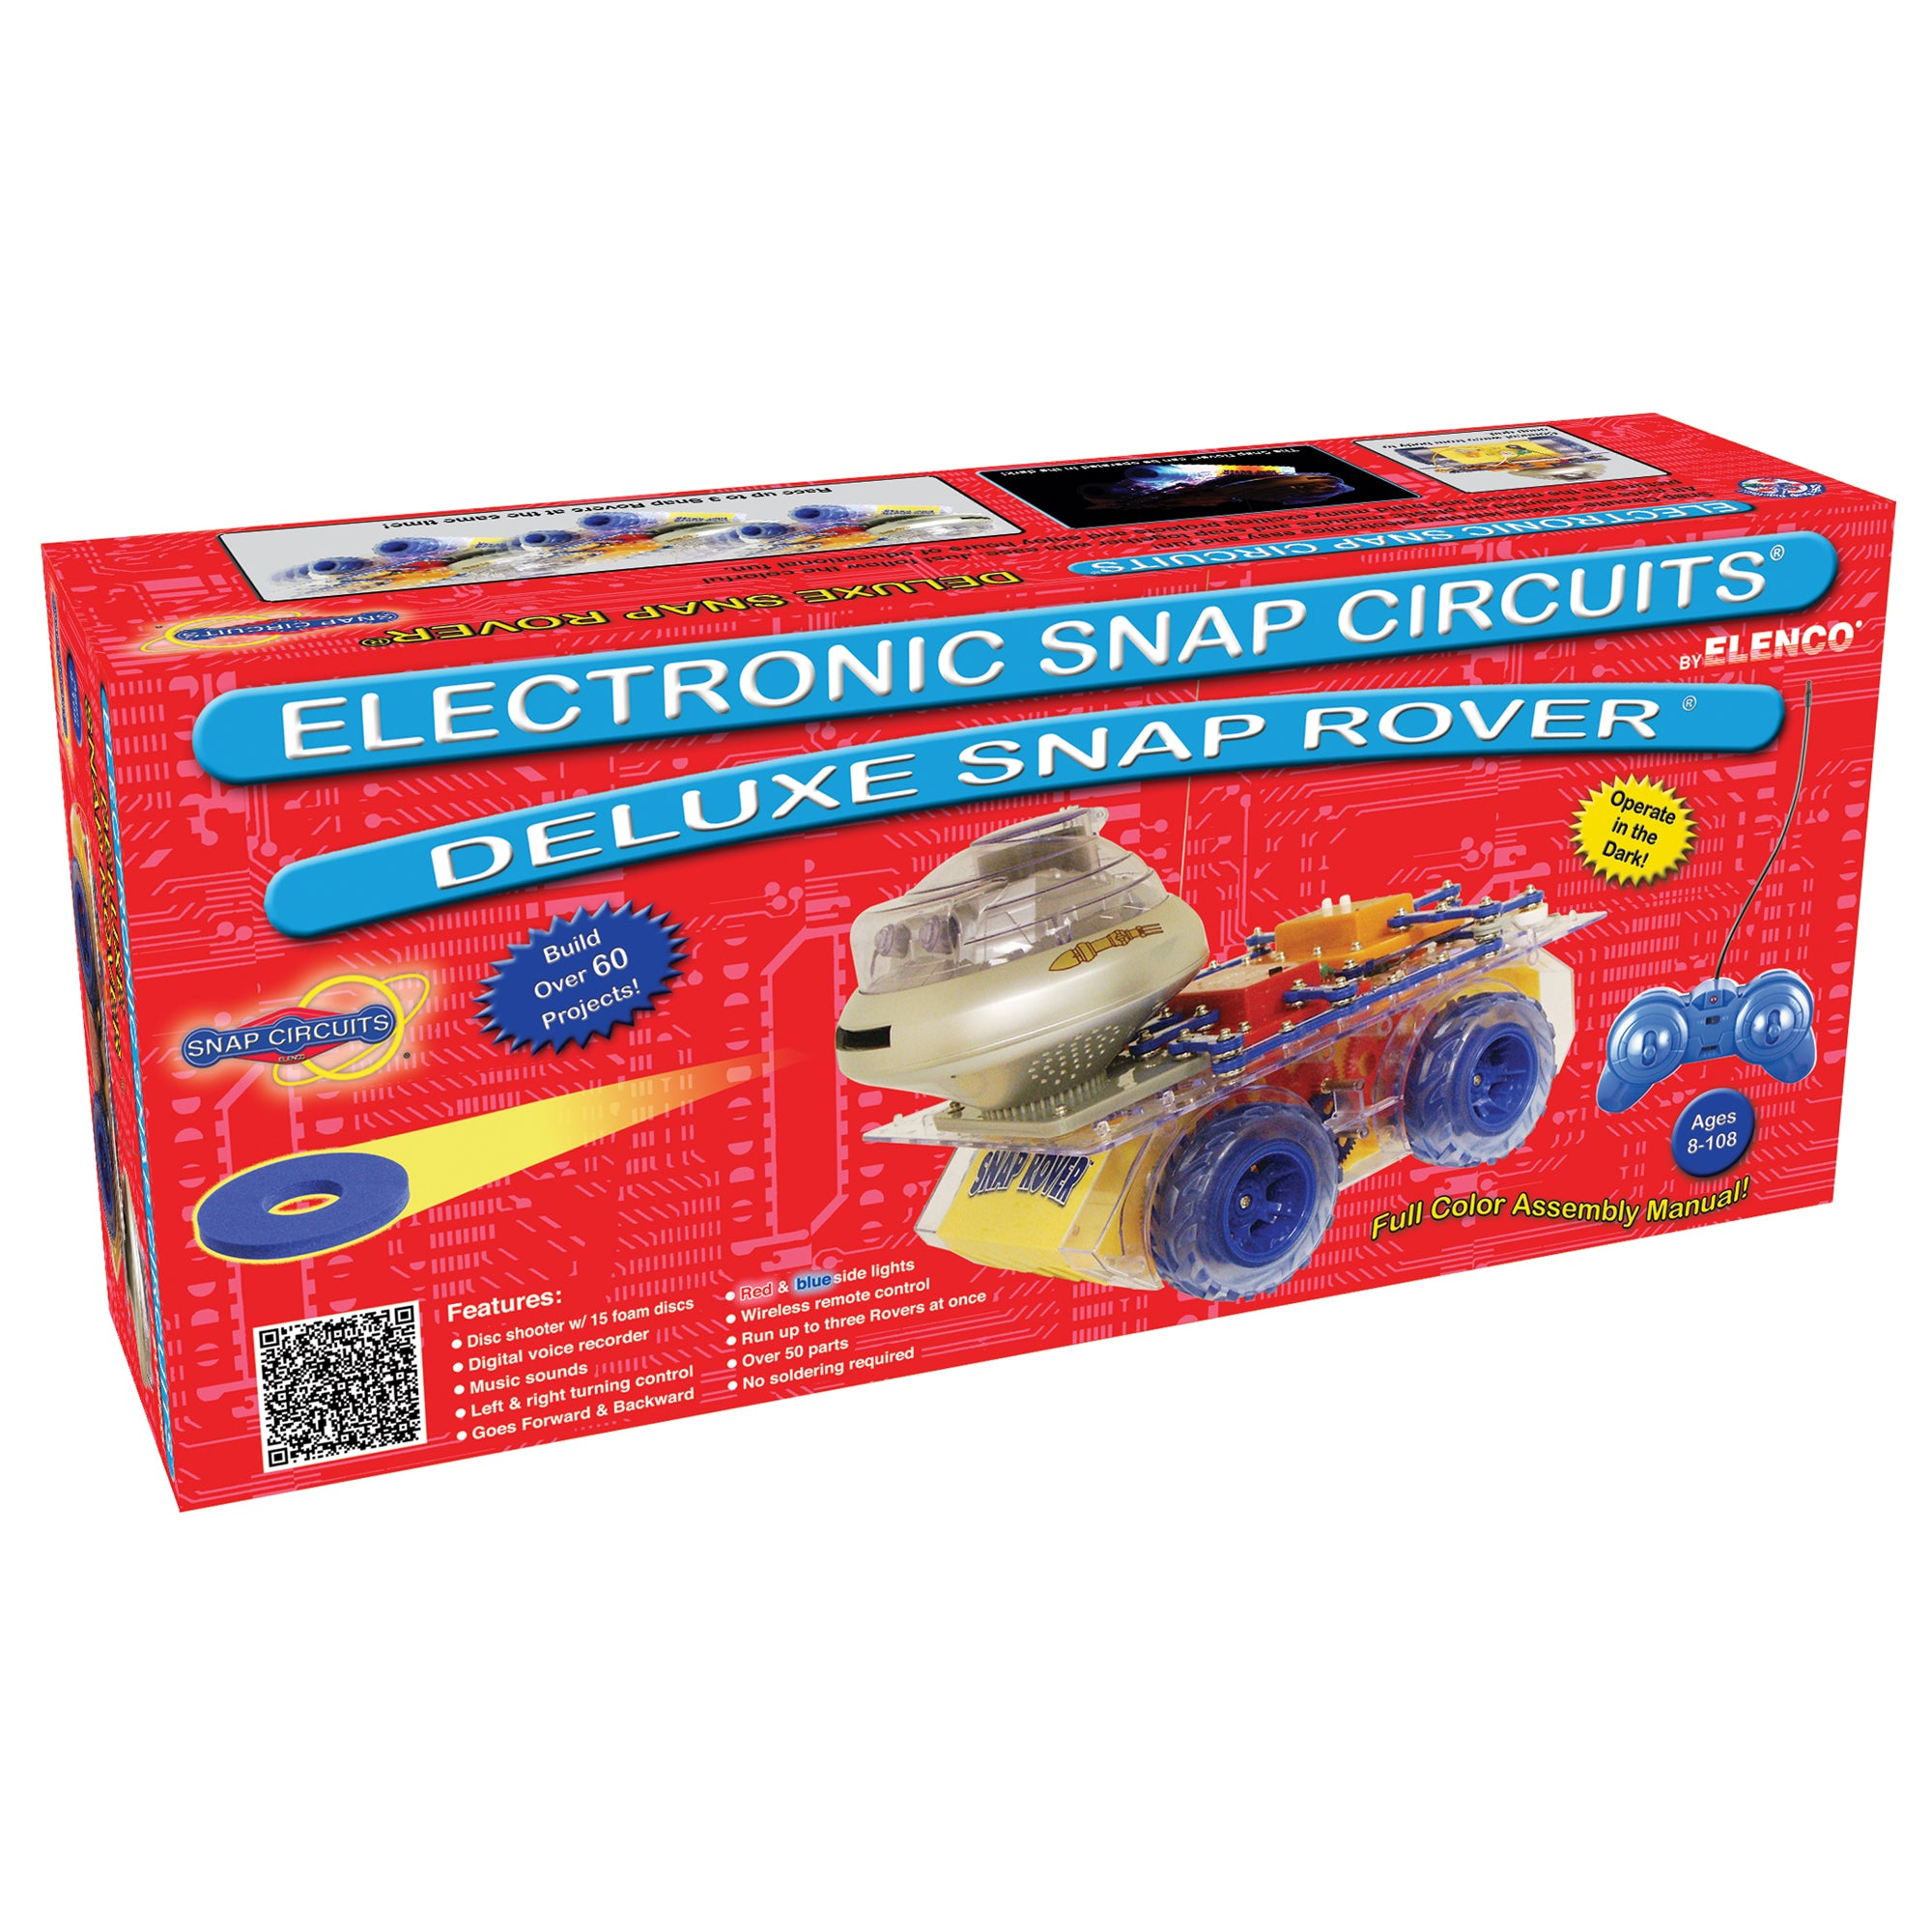 Elenco Snap Circuits Deluxe Rover Scrov50 Stem Toy Store Circuit Manual 60 Projects